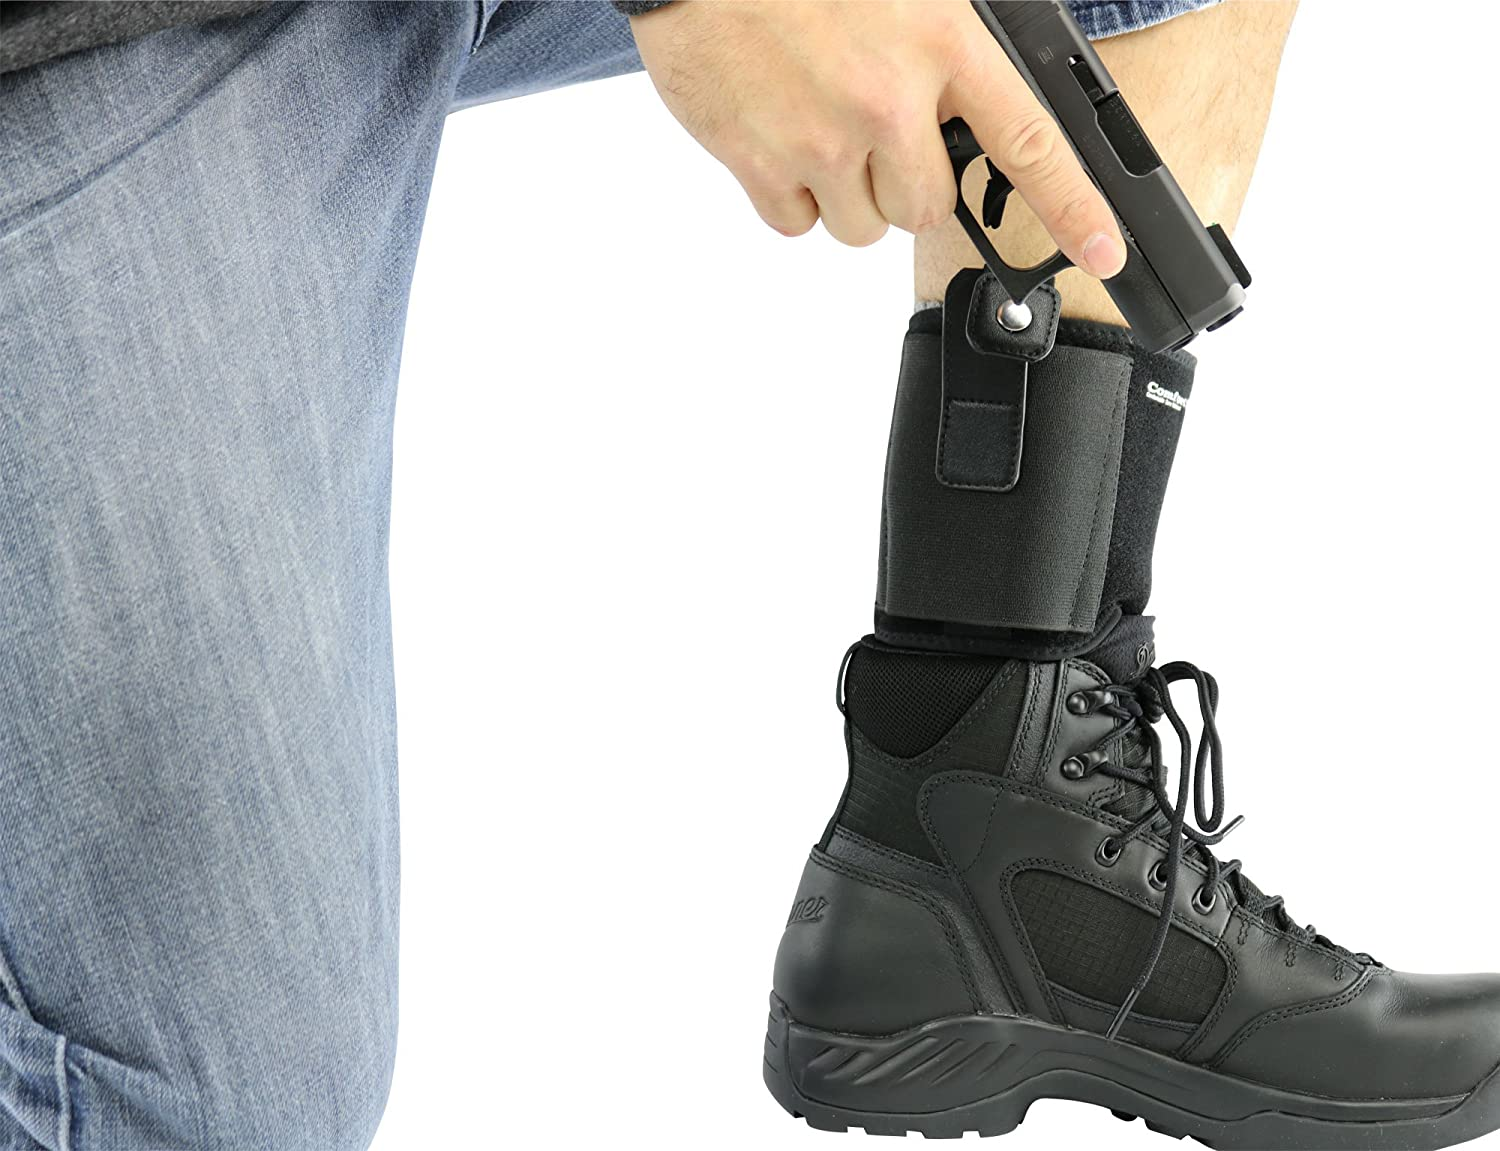 Comforttac Ultimate Ankle Holster